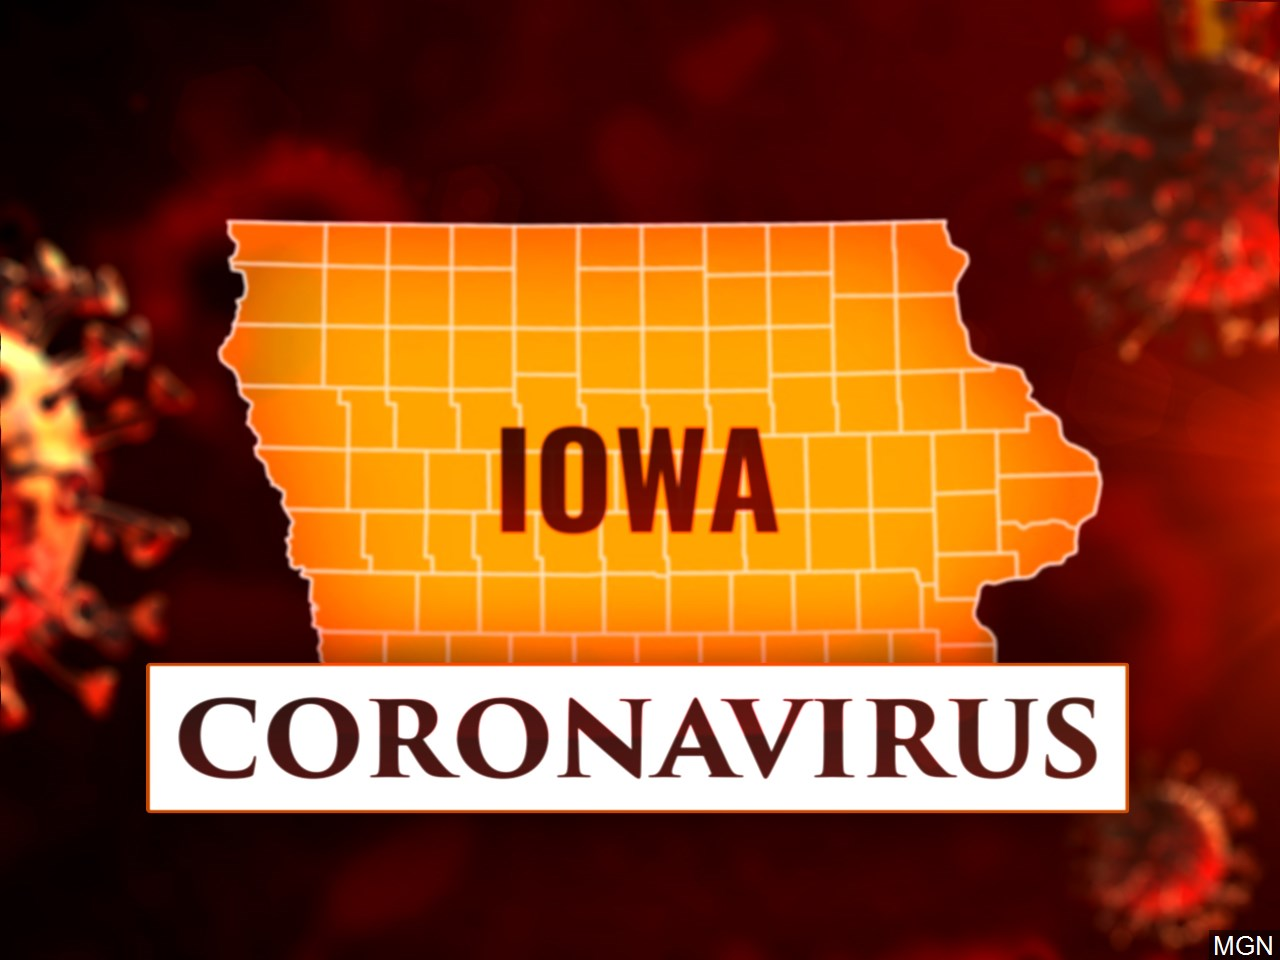 21 More COVID-19 Deaths, 595 New Cases Reported in Iowa 8